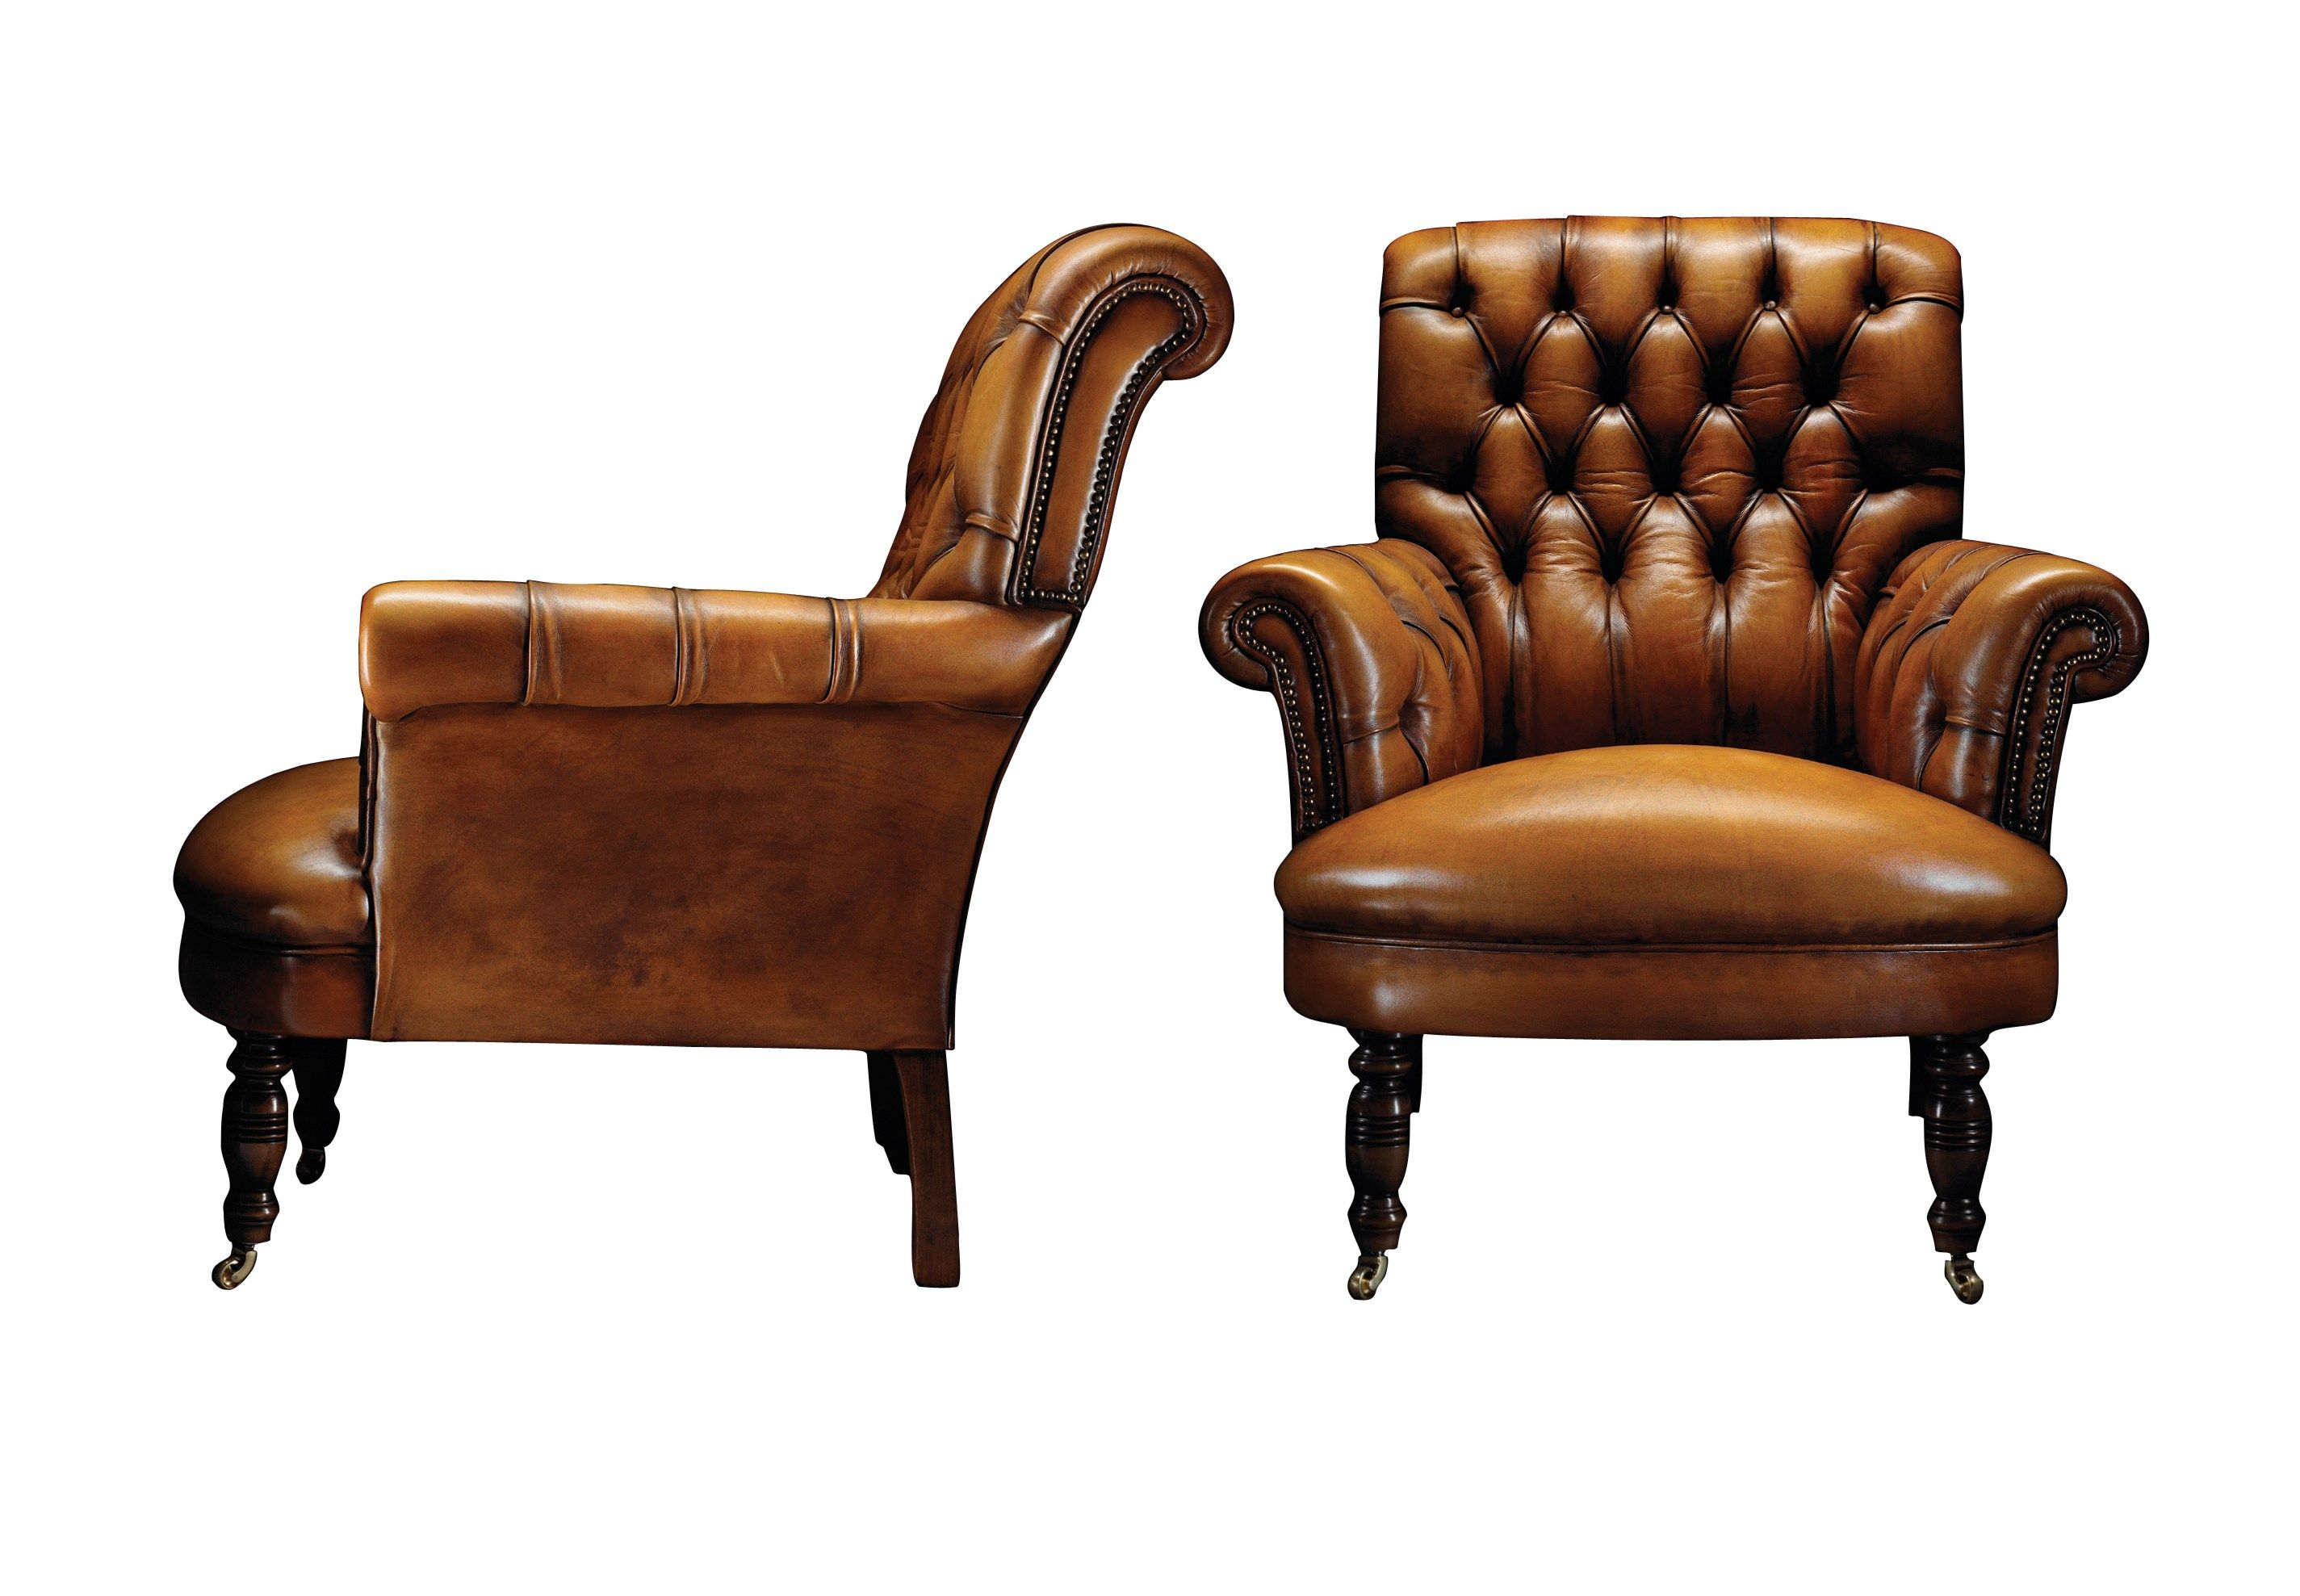 Single Chesterfield Tan Leather Sofa Tufted Seat